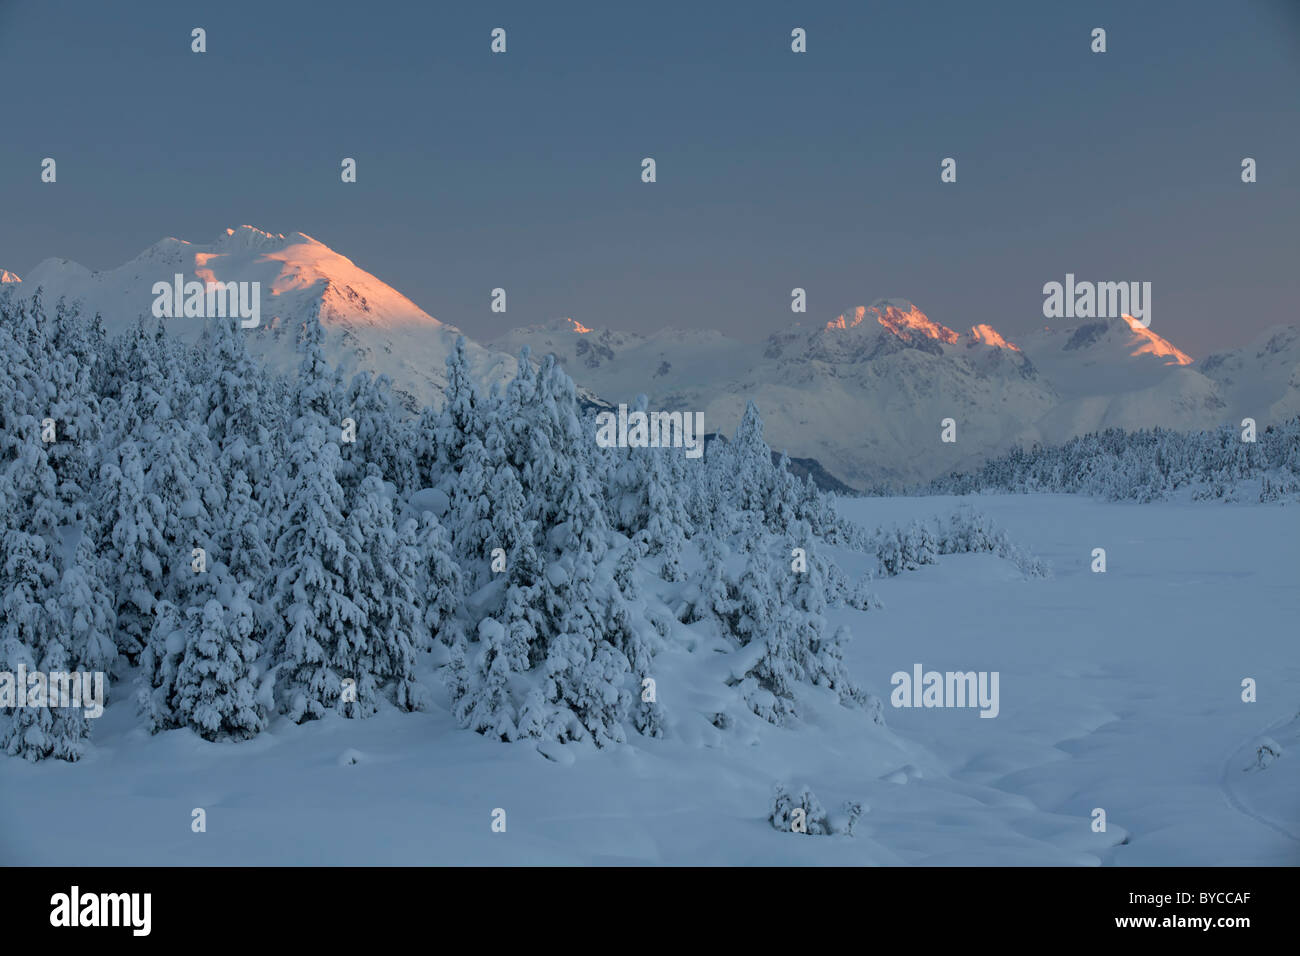 Snow trees in Turnagain Pass, Chugach National Forest, Alaska. - Stock Image